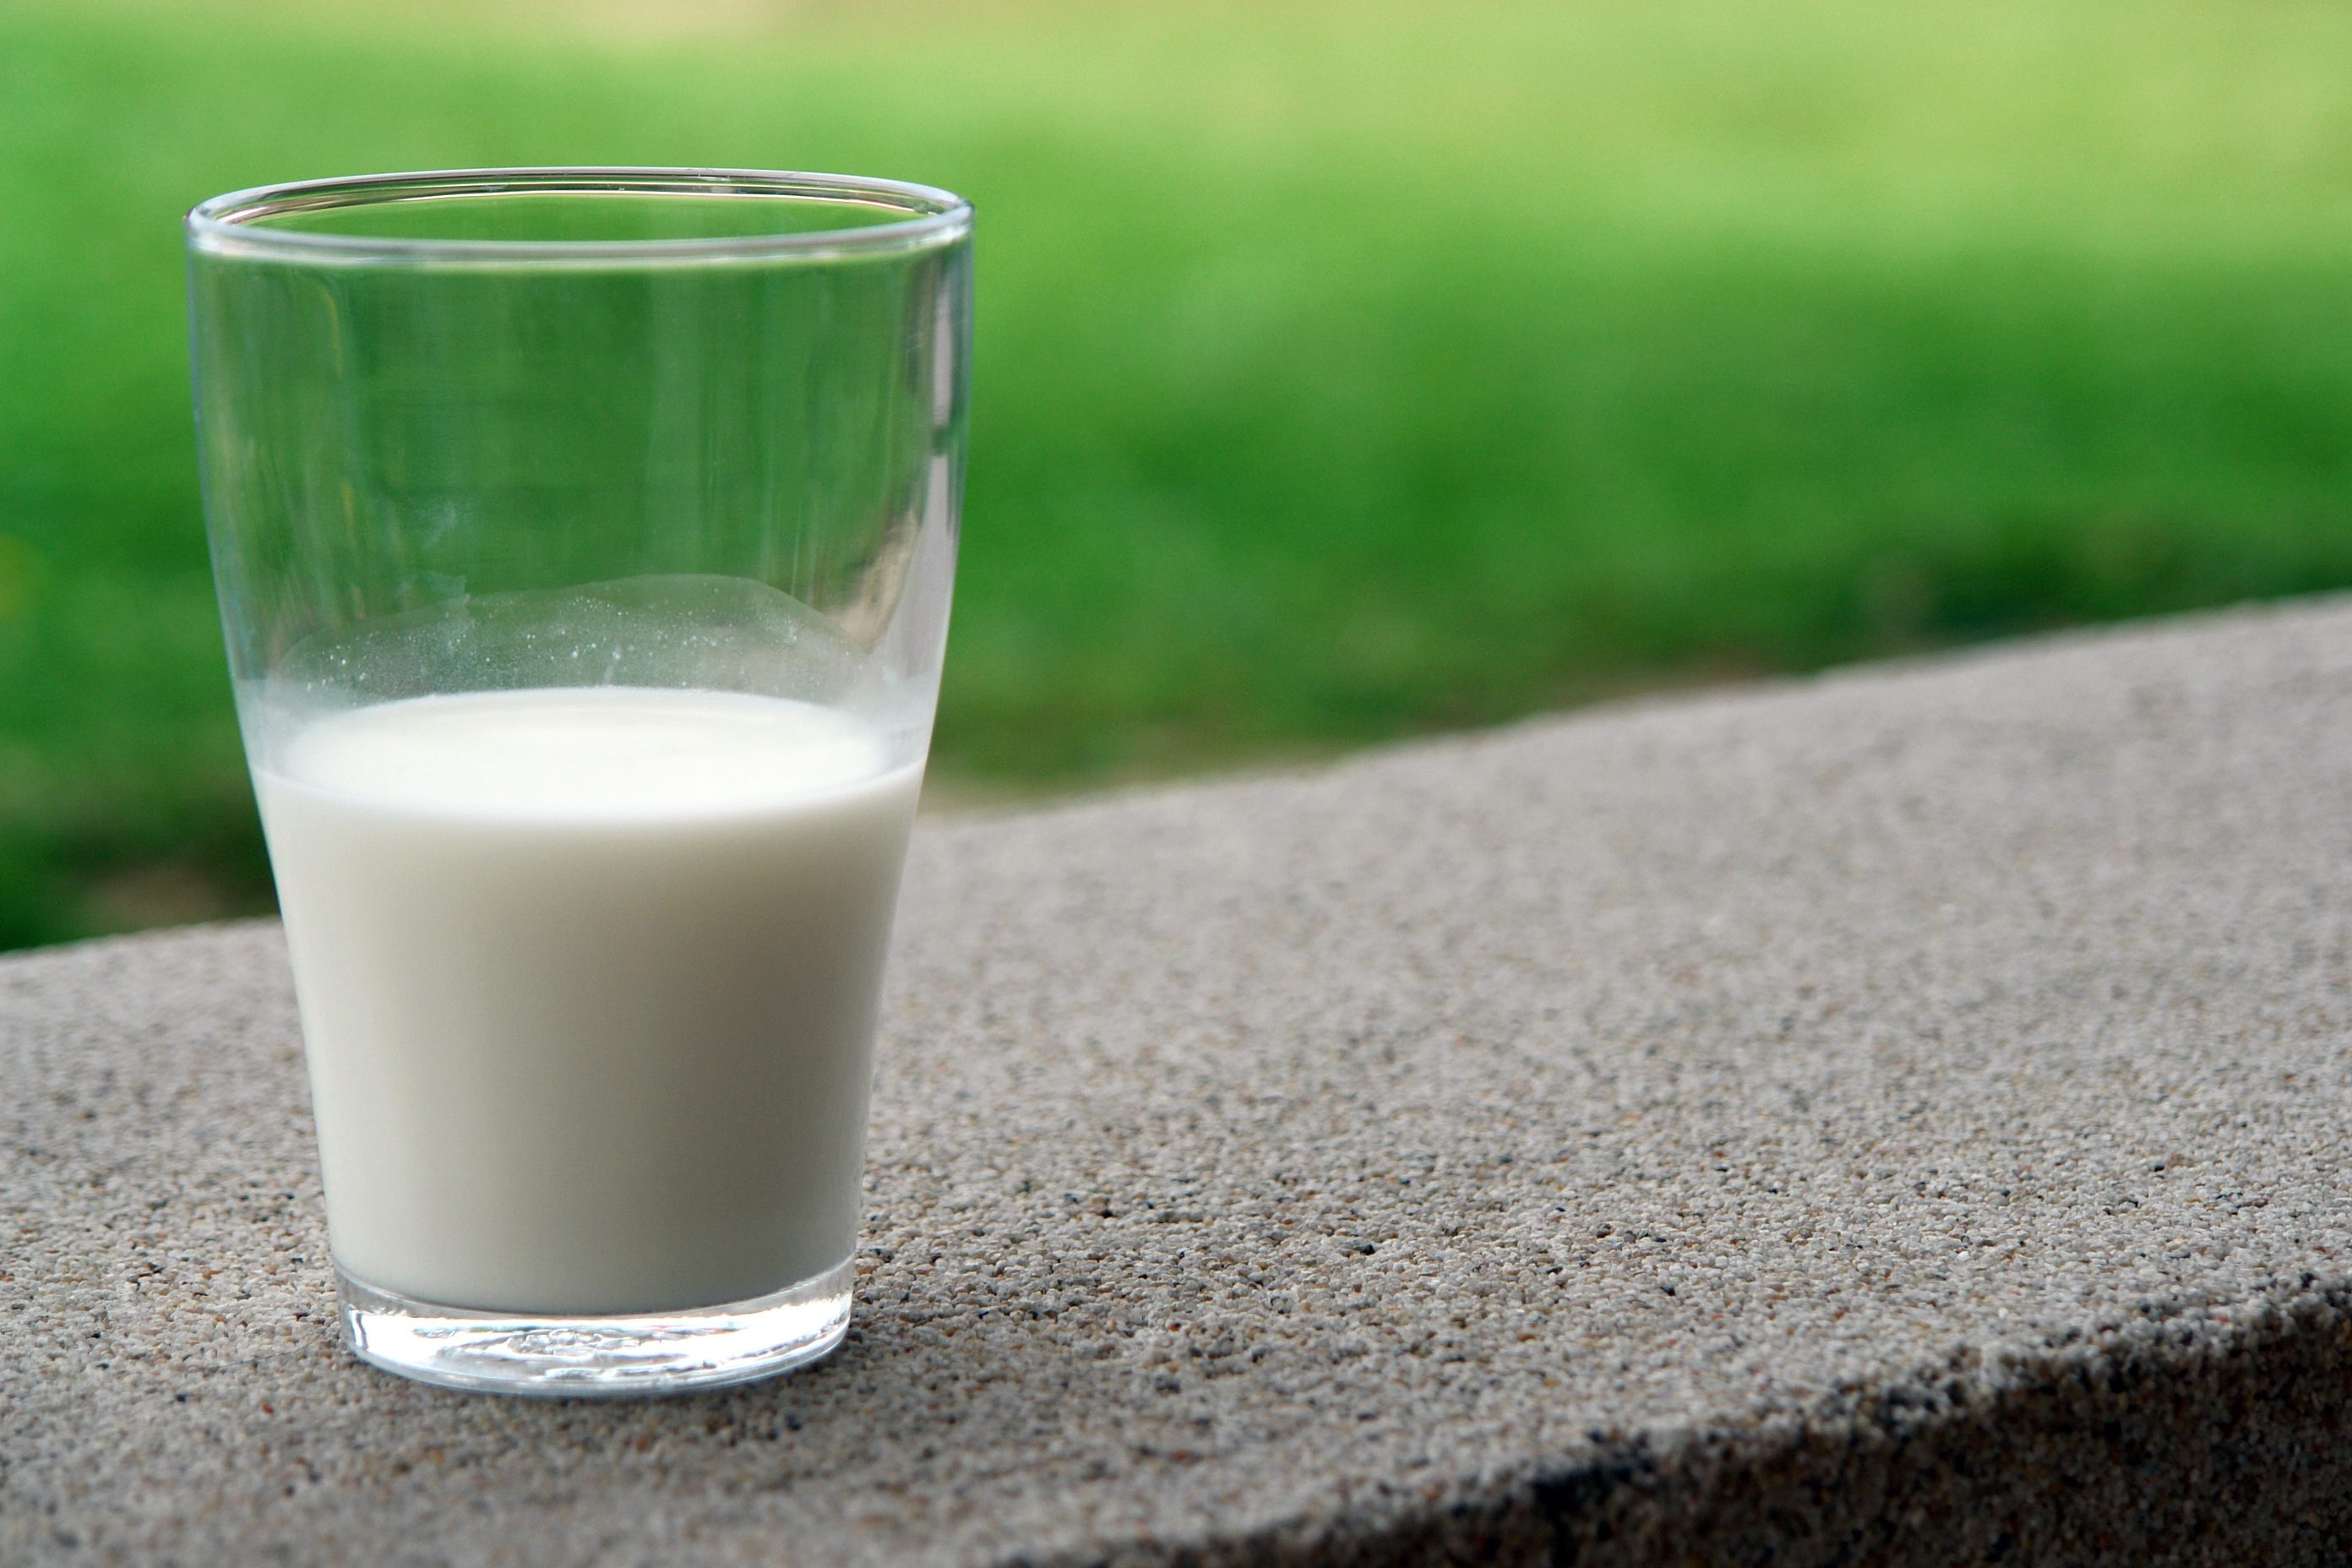 If you store your milk in the refrigerator door, you should probably stop